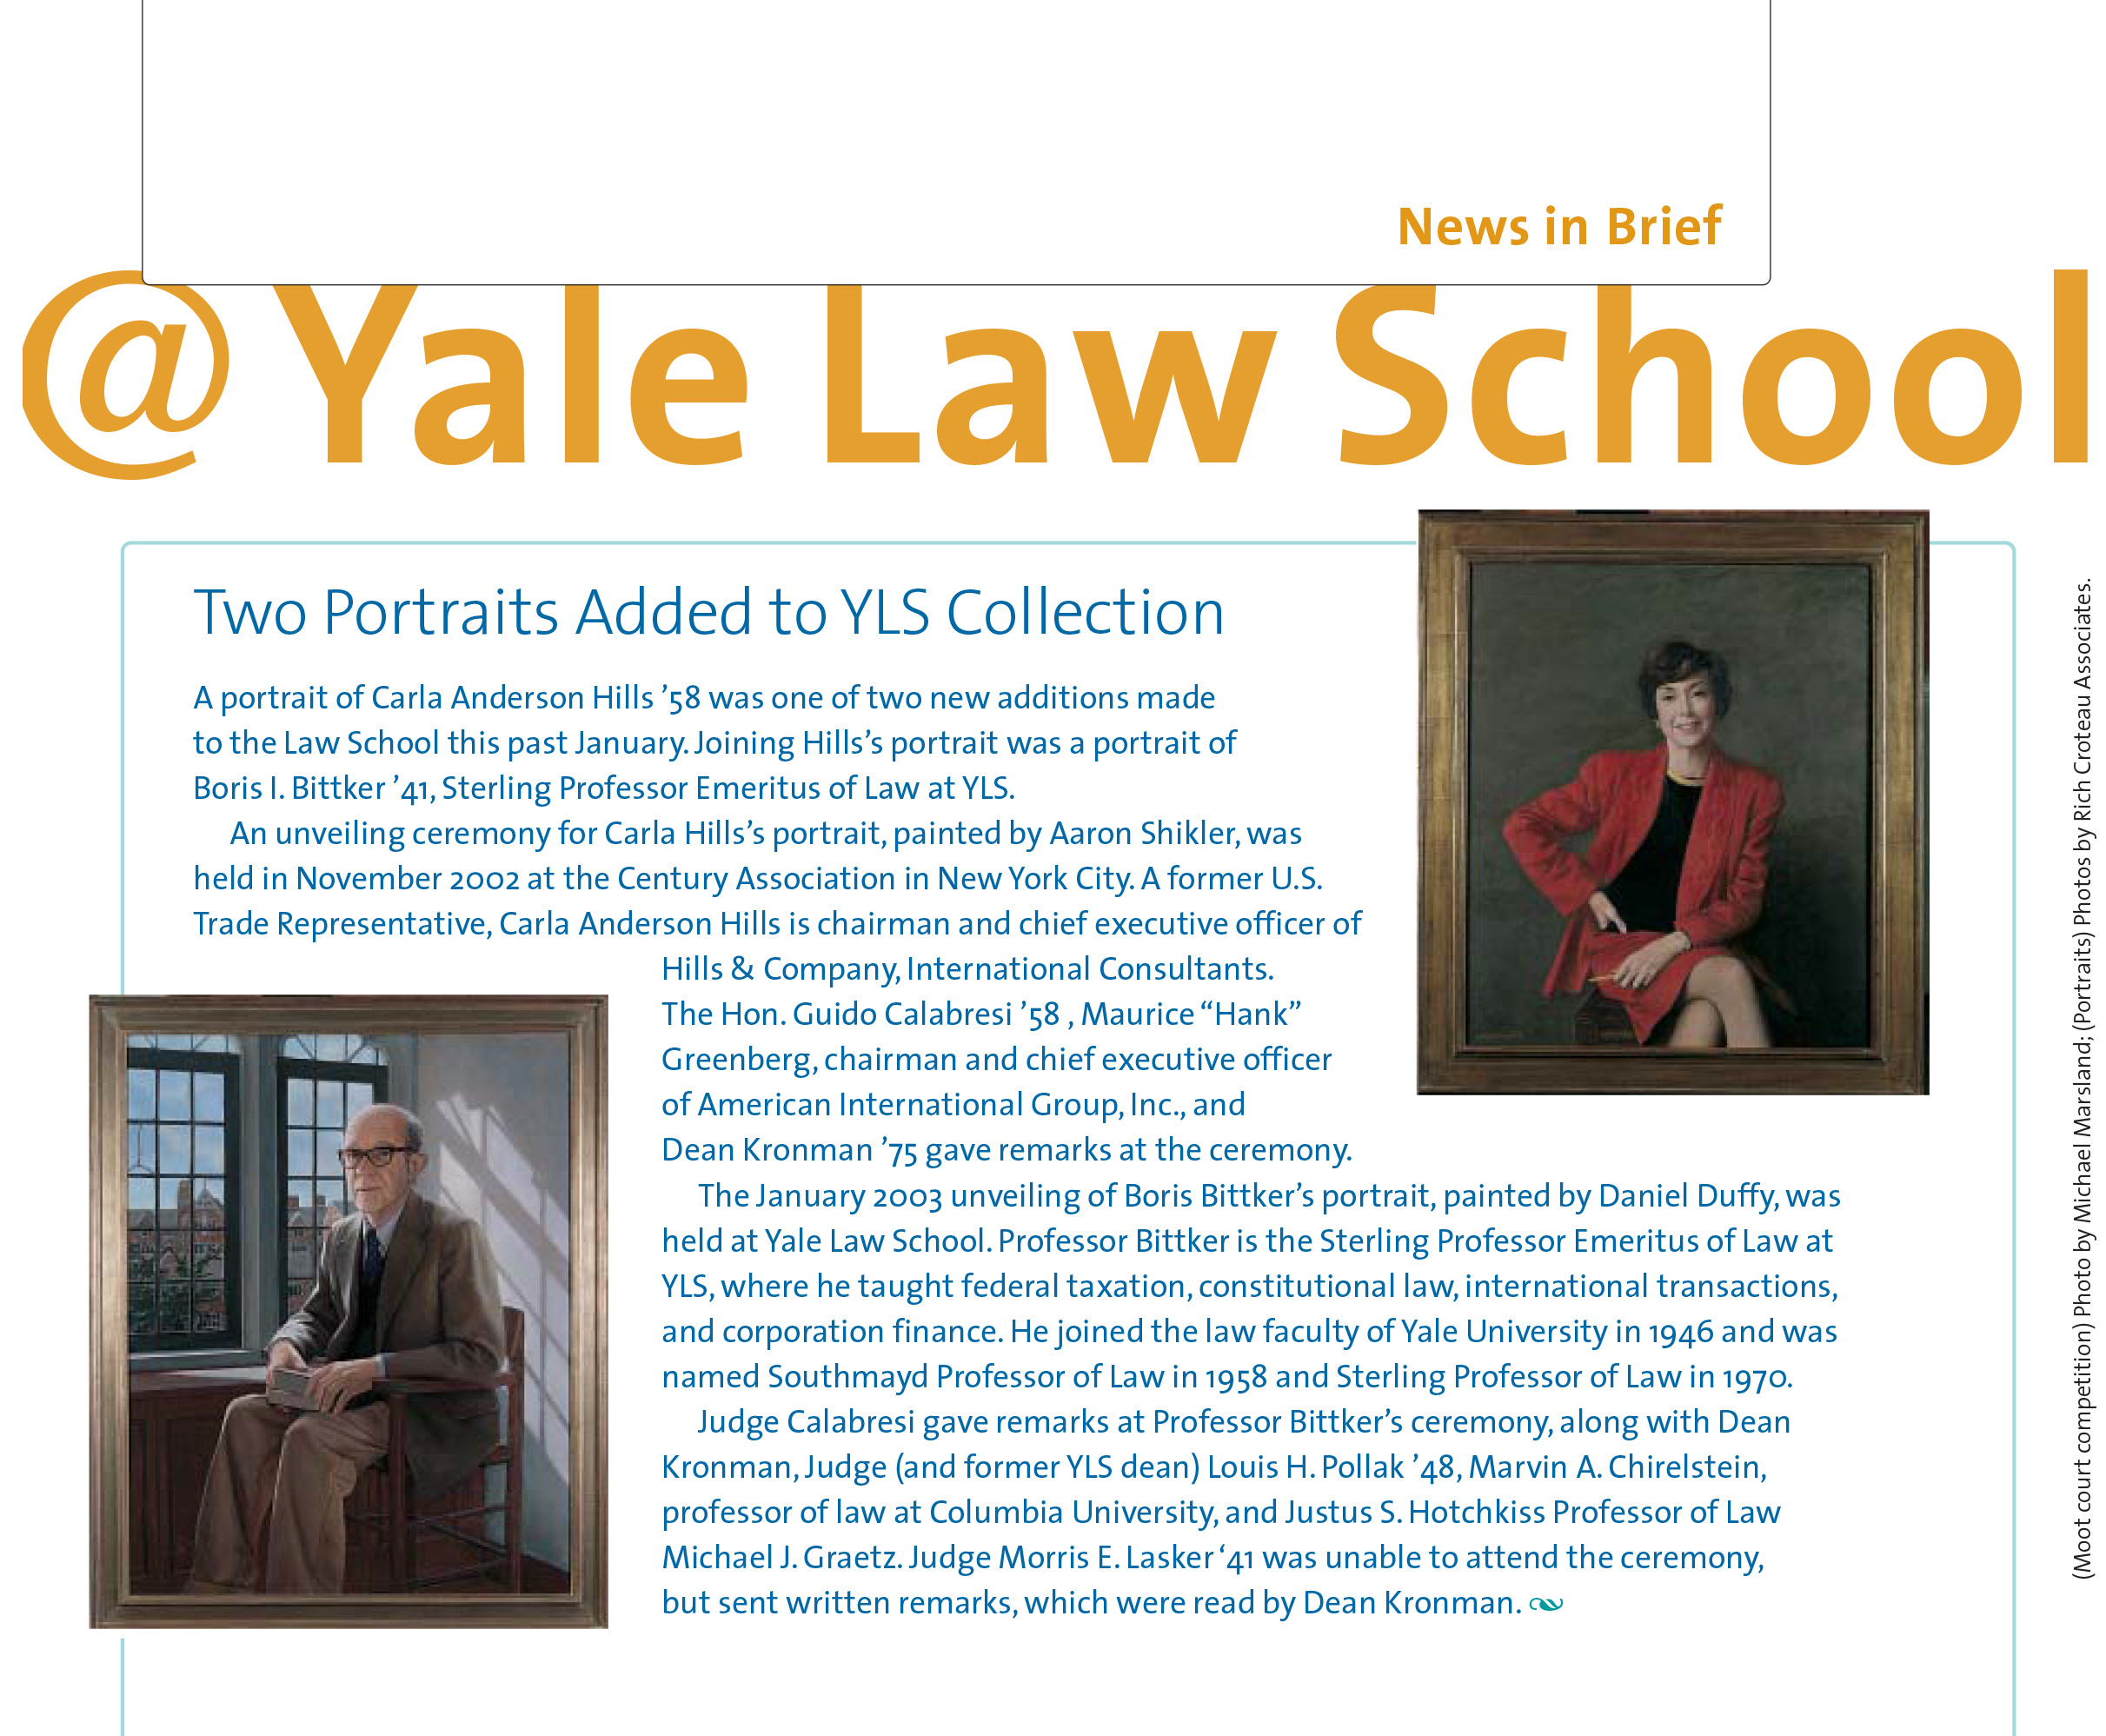 2003-01-21--Portrait-of-Boris-Bittker-unveiled-at-Yale-law-School.jpg